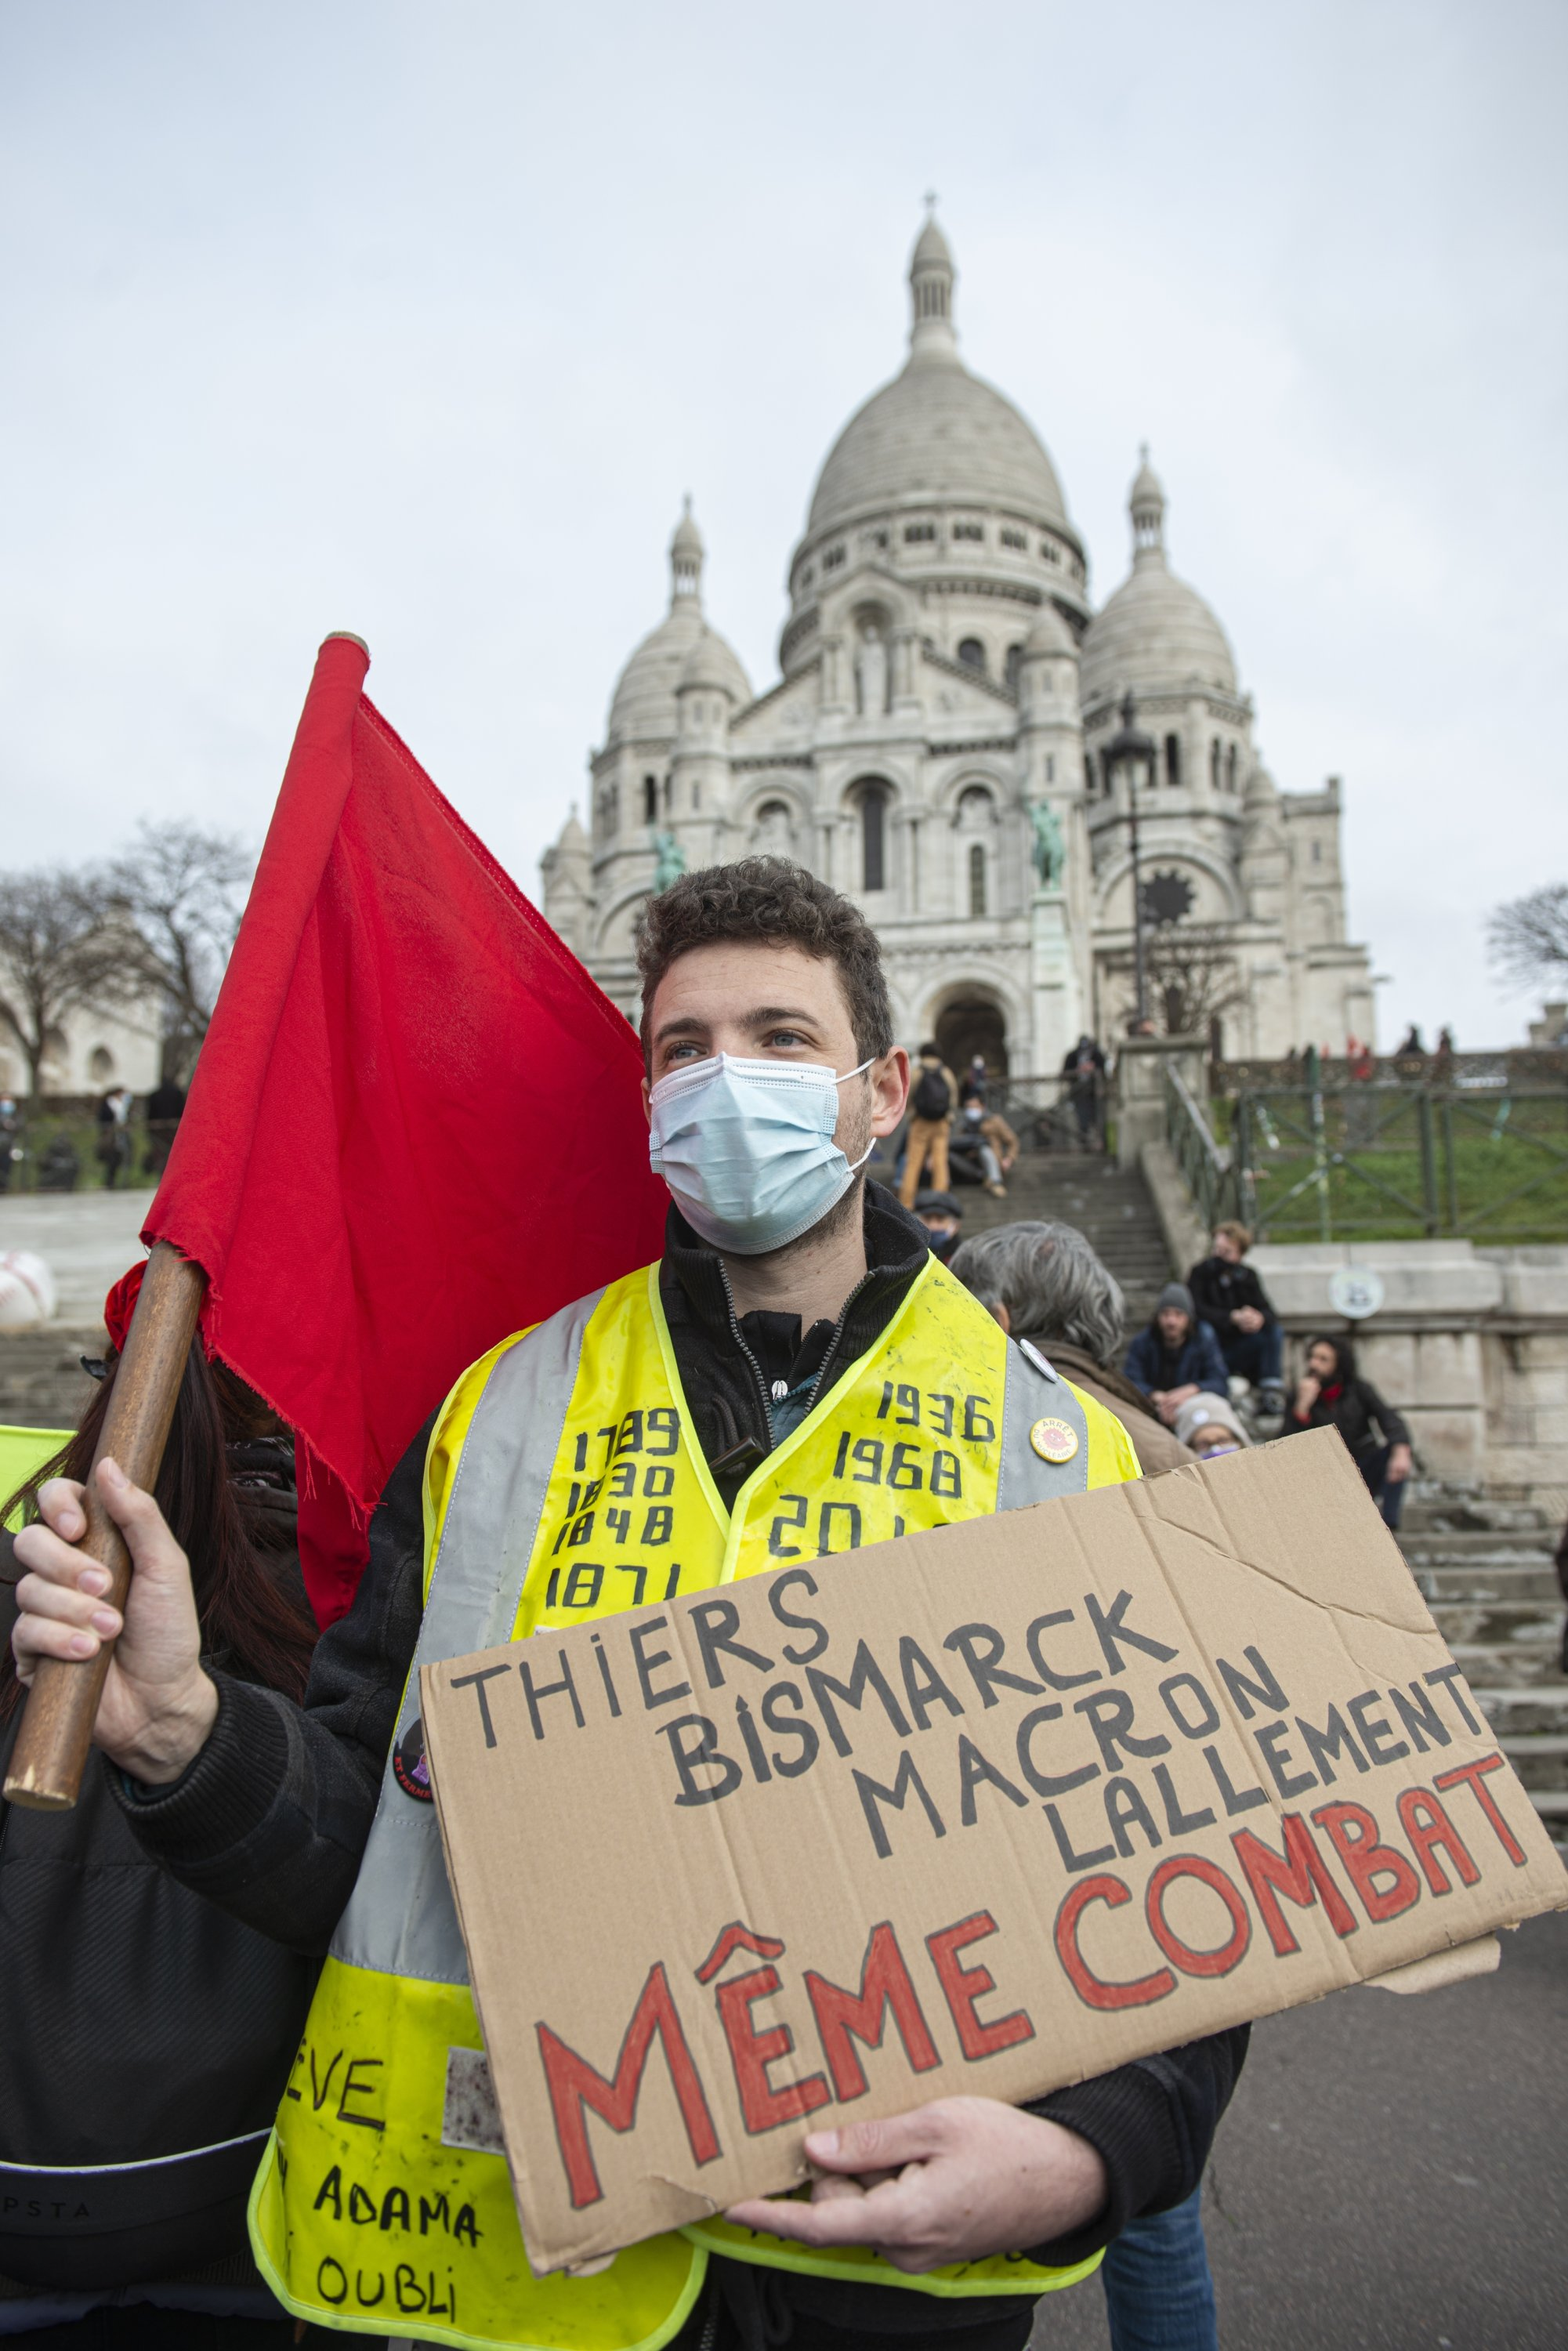 A commemoration of the 150th anniversary of the Paris Commune, in front of the Sacre-Coeur Basilica, in Montmartre, Paris, France, March 18, 2021. The placard reads: (French PM Adolphe) Thiers, (Prussian Chancellor Otto von) Bismarck, (incumbent French President Emmanuel) Macron, (Paris police chief Didier) Lallement, same fight. (Photo: Joao Luiz Bulcao/Hans Lucas via Reuters)